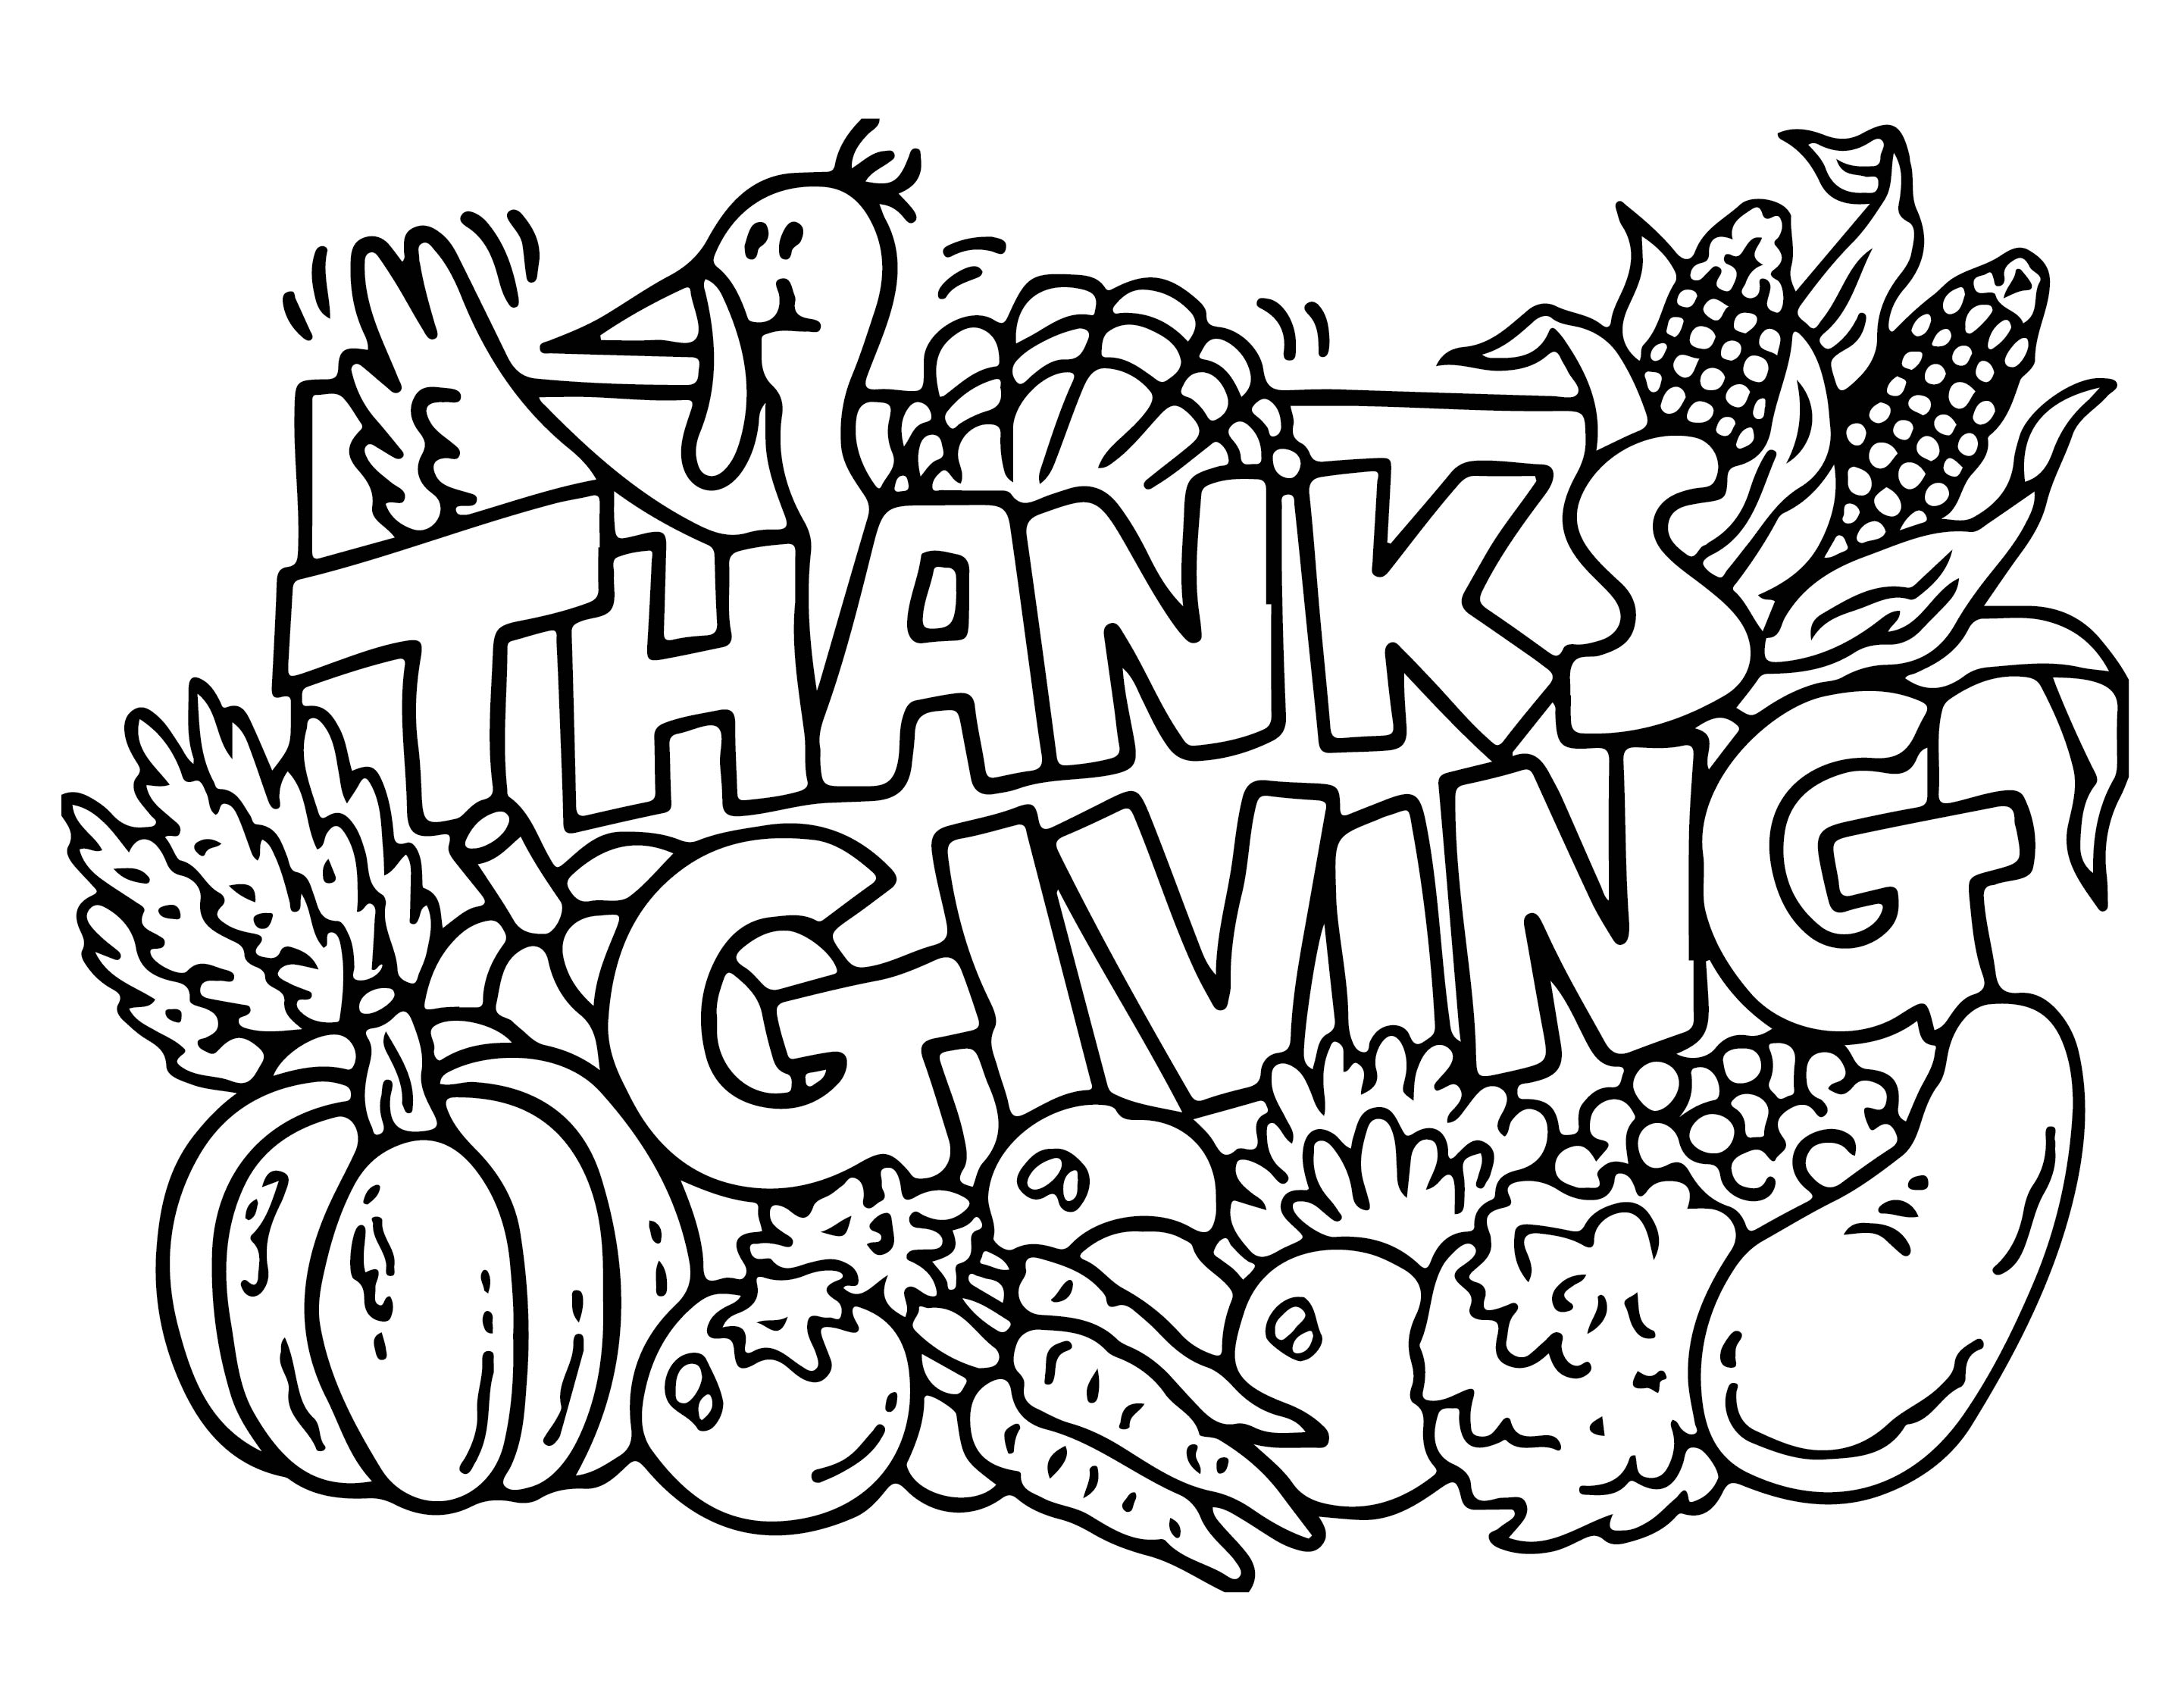 Thanksgiving Printable Images Gallery Category Page 1